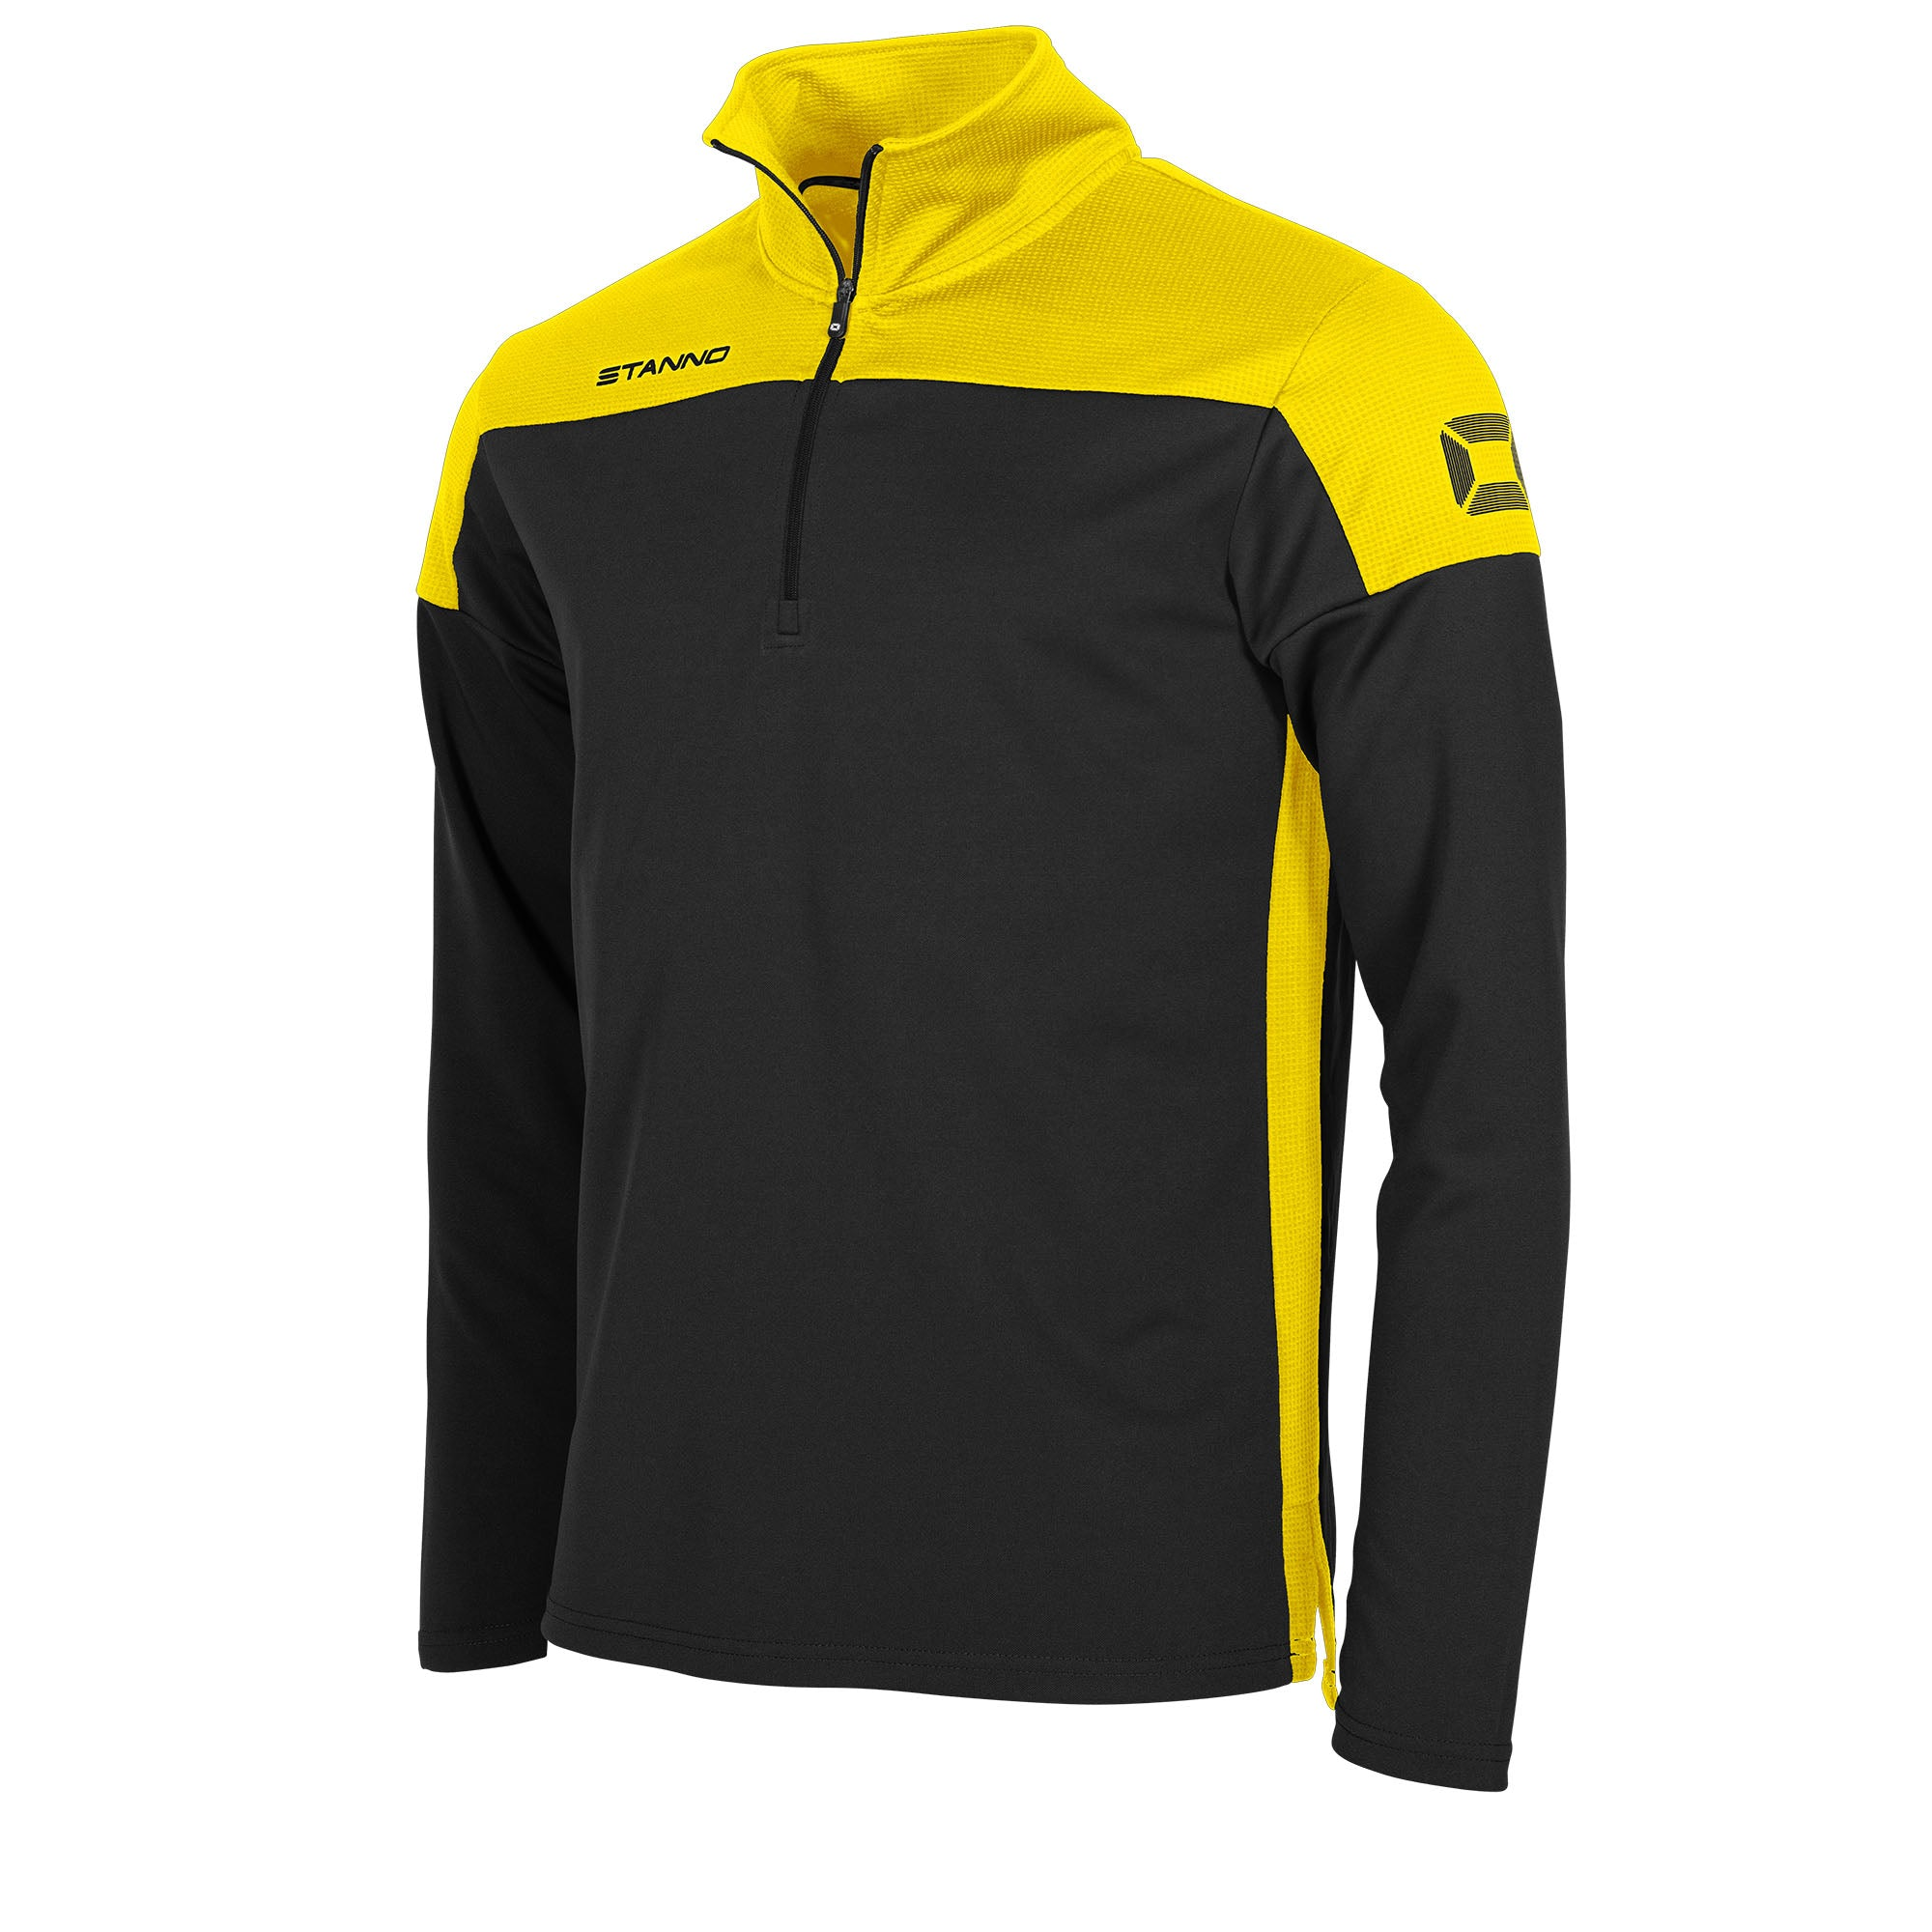 Stanno Pride Training 1/4 Zip in black with yellow contrast shoulder and side panel